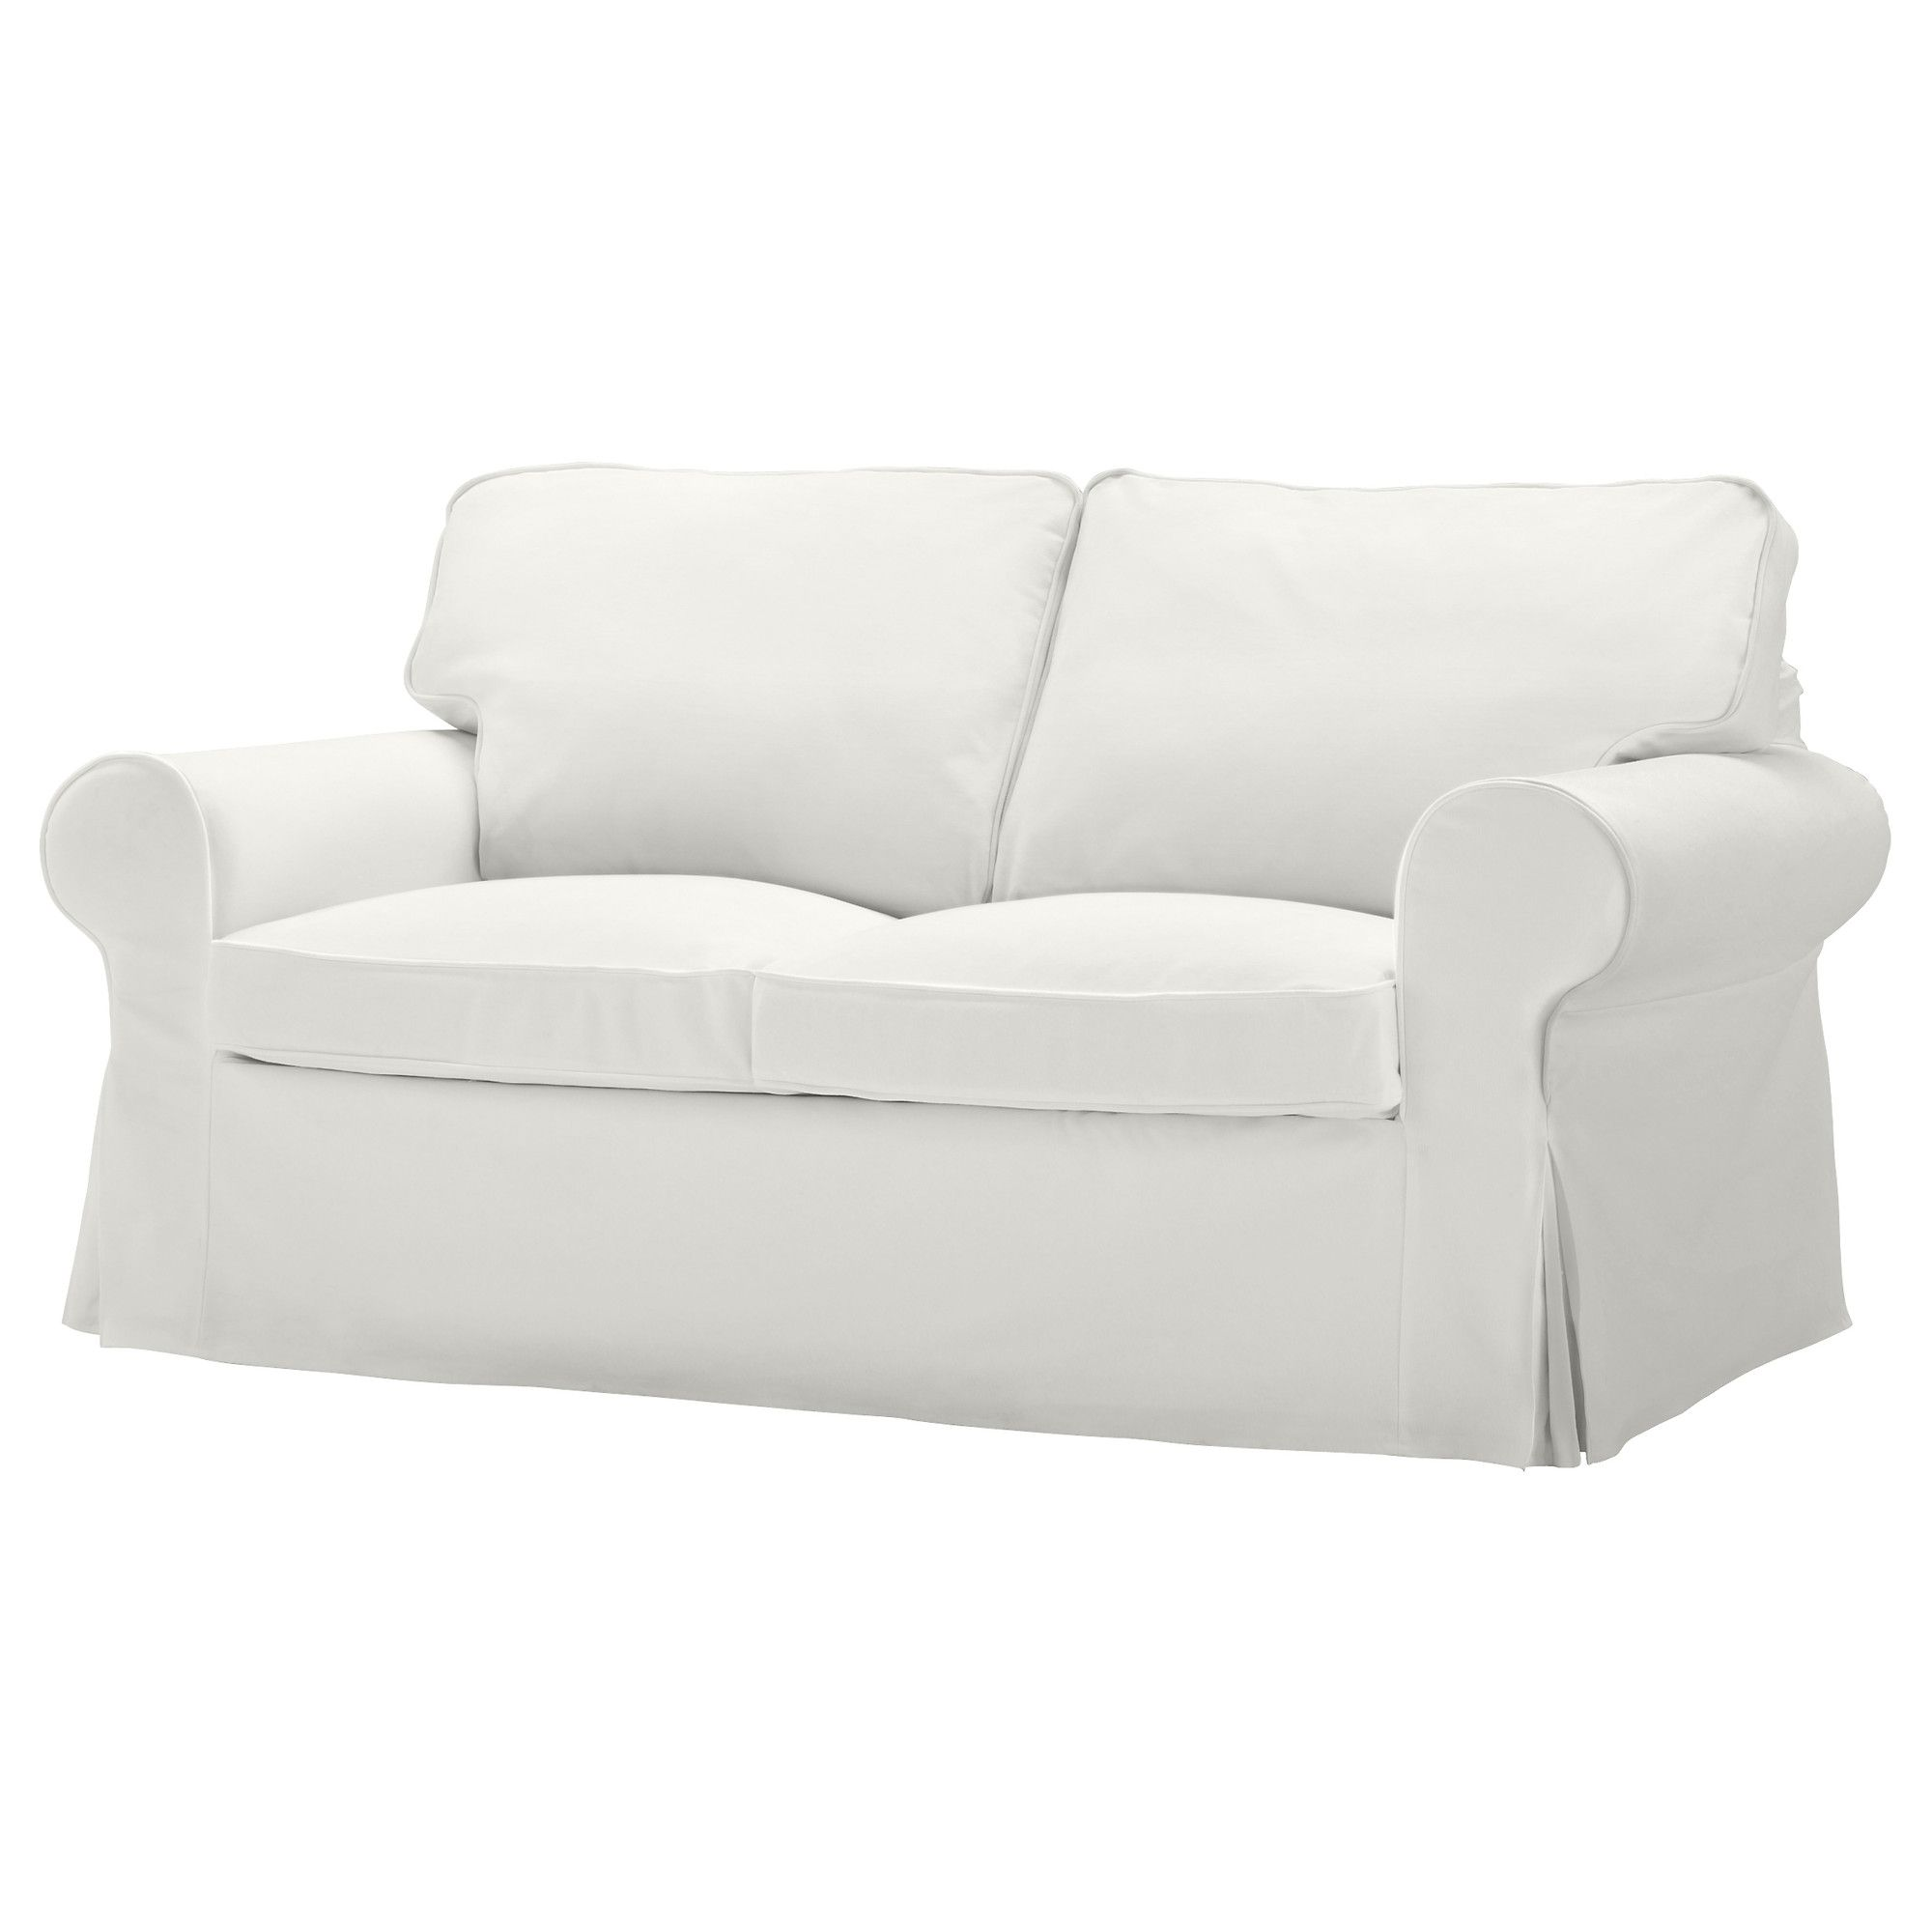 best outstanding sleeper modern sofa bed great on smalltowndjs products white leather houzz